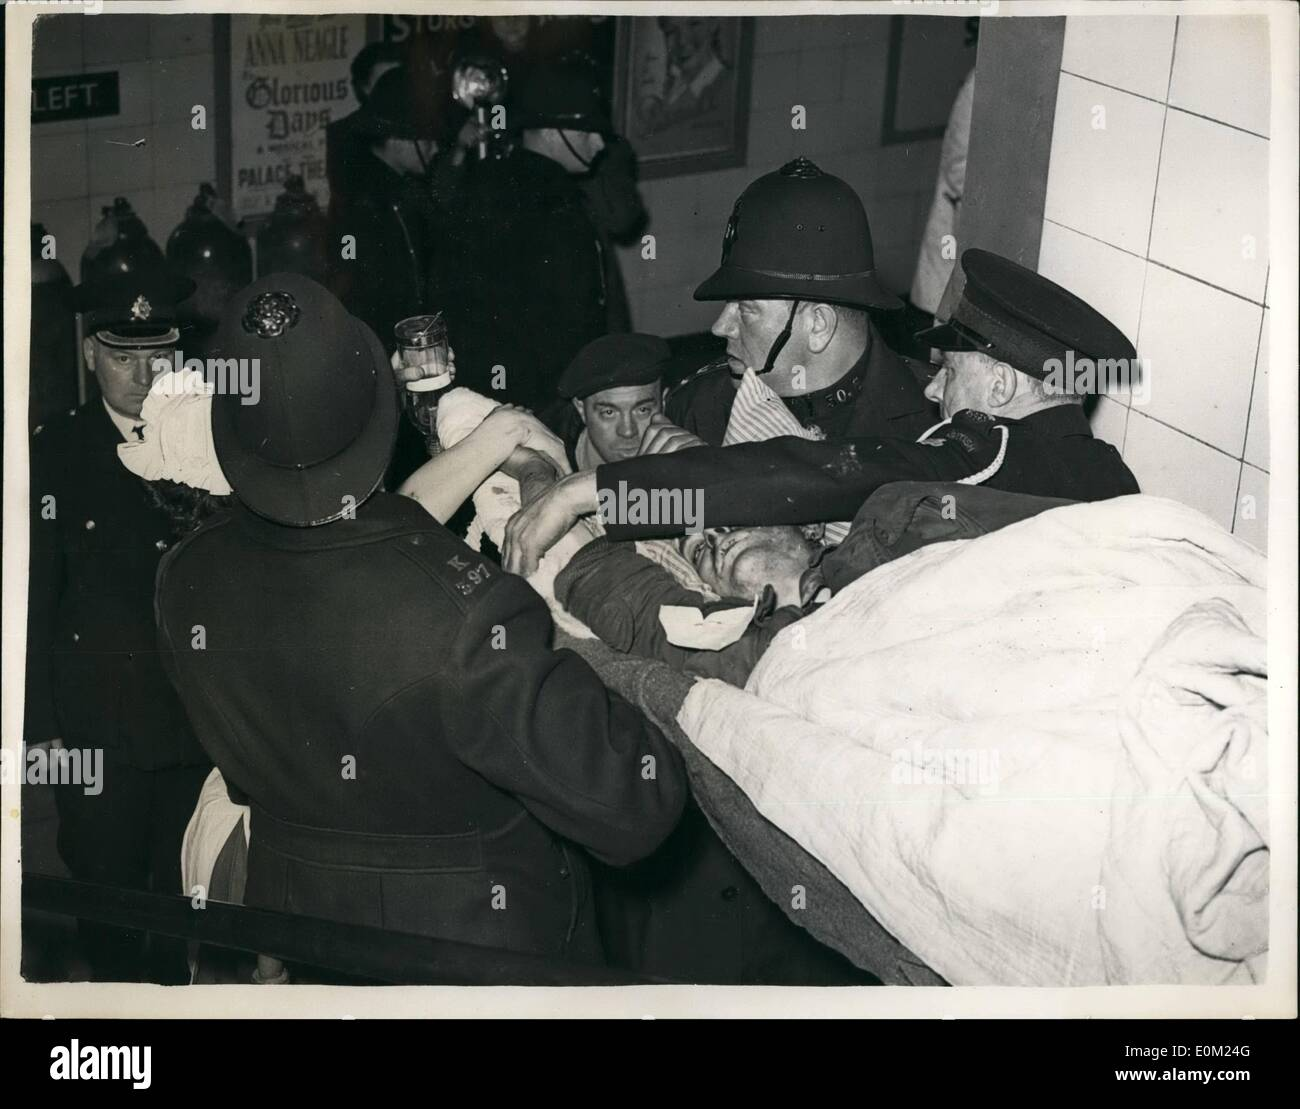 Apr. 04, 1953 - Nine Killed In Tube Disaster: Nine people were known today to have been killed in the Central Line tube disaster at Stratford last night - the worst in London's Underground history. Photo shows Ten hours after the crash policement and an ambulance men carry one of the inured out today. Stock Photo